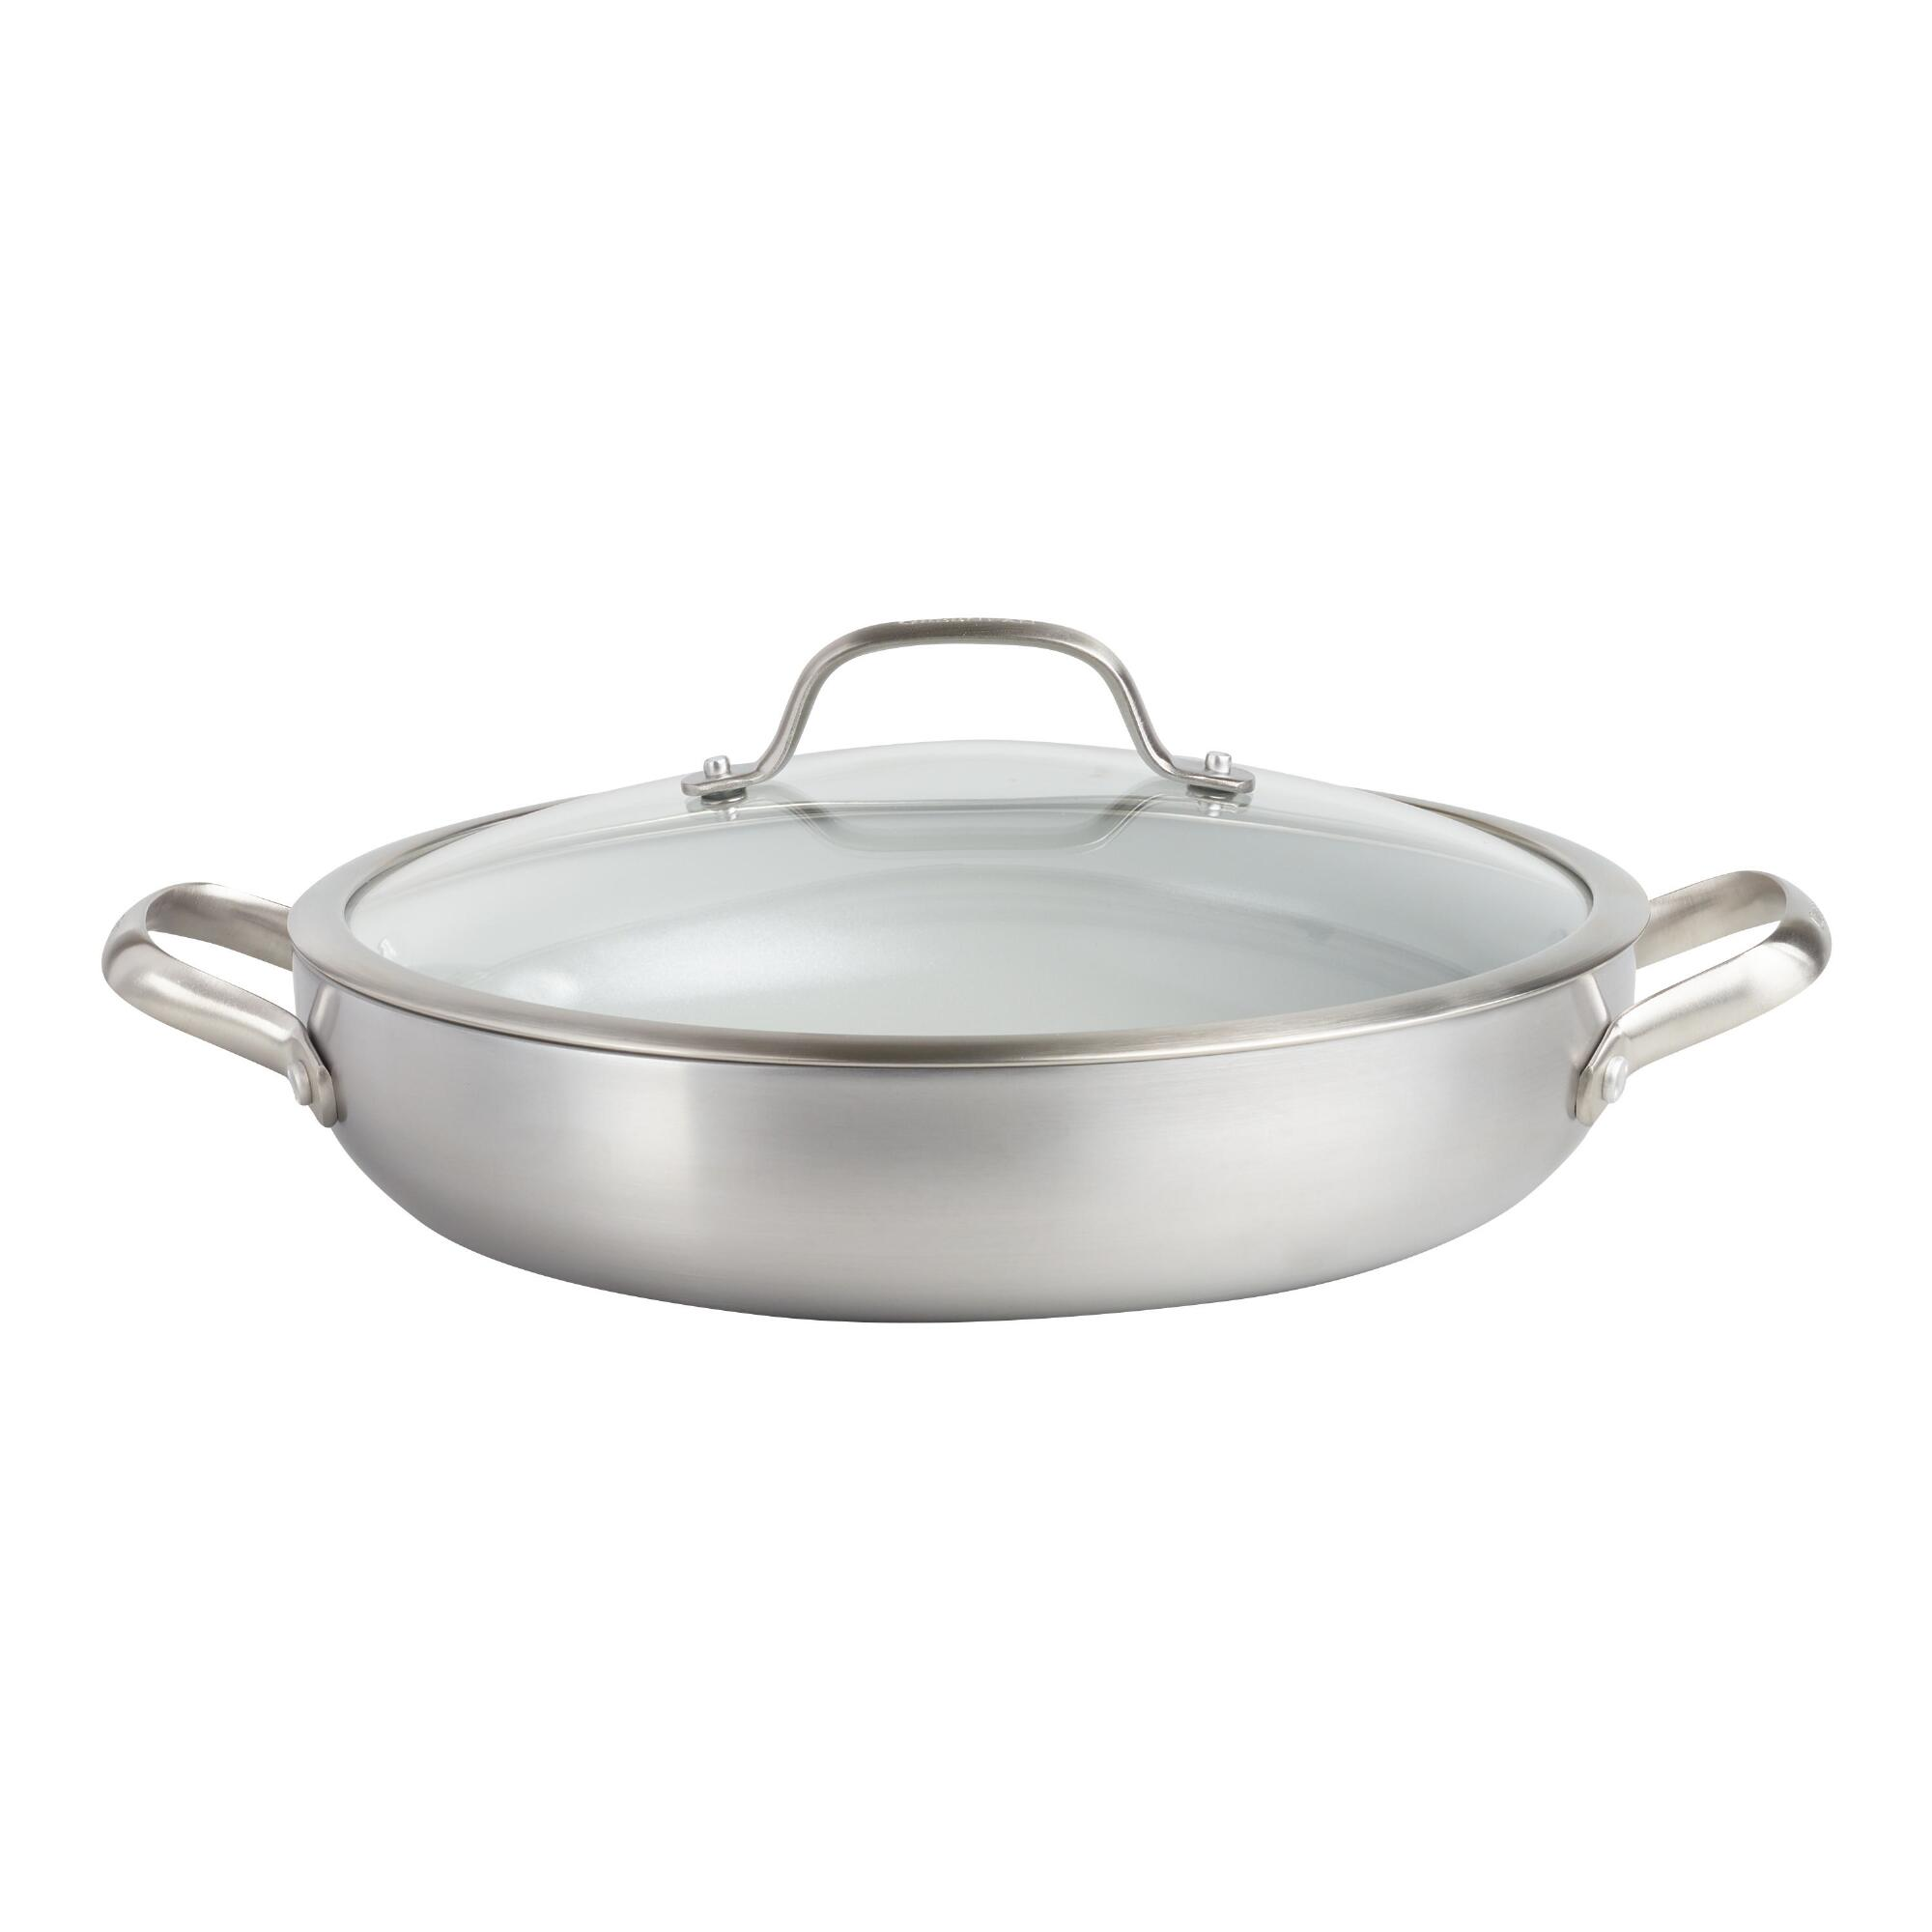 12 Inch GreenPan Venice Pro Nonstick Ceramic Everyday Pan by World Market